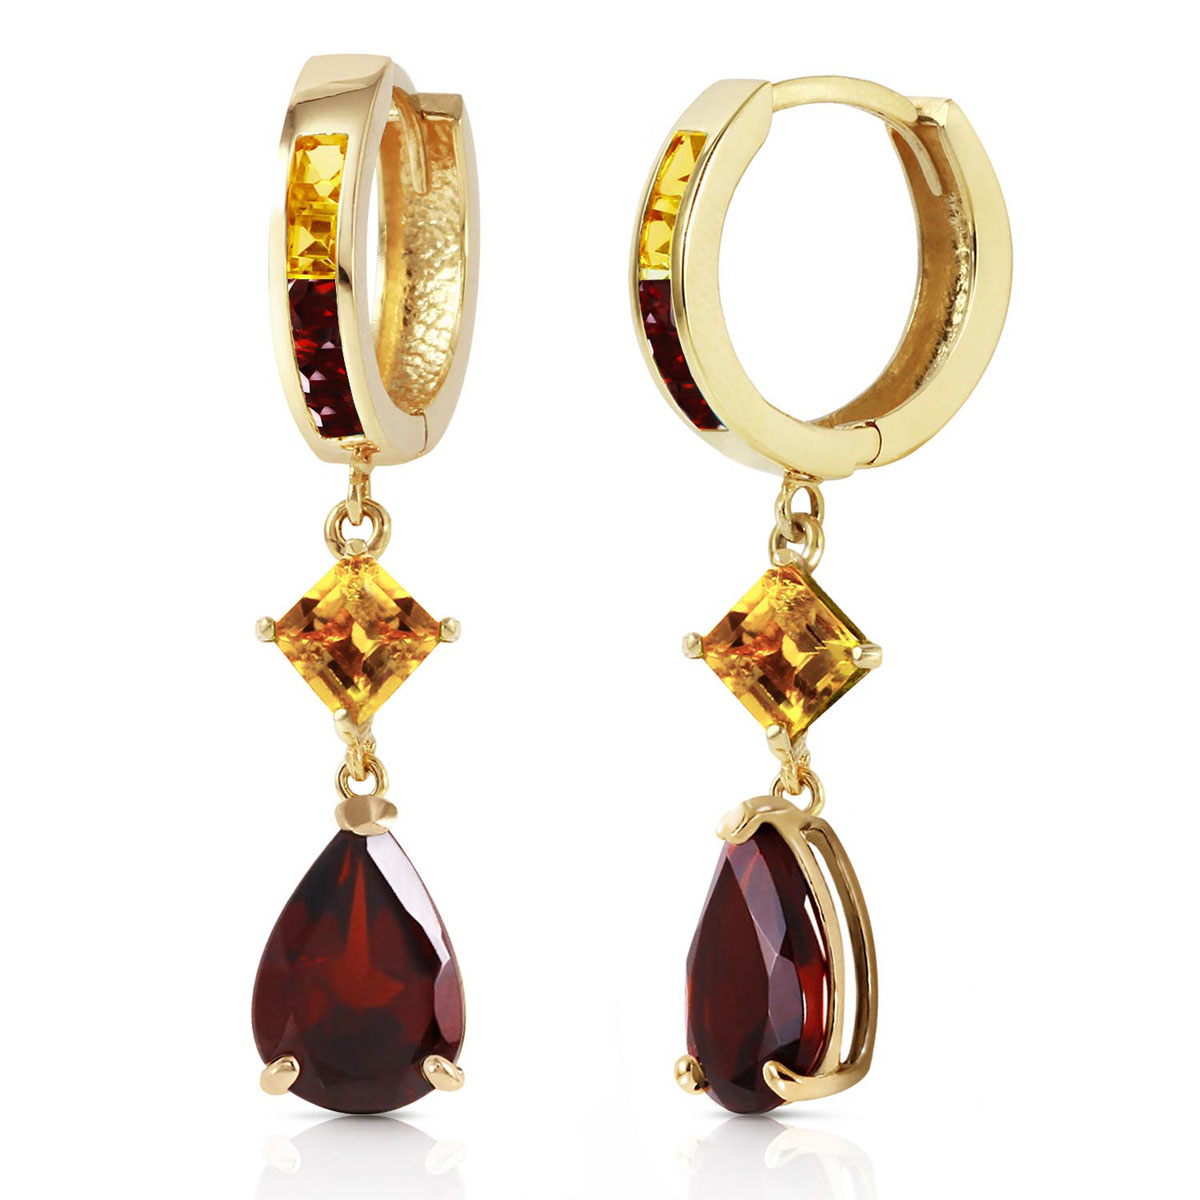 Garnet & Citrine Huggie Earrings in 9ct Gold